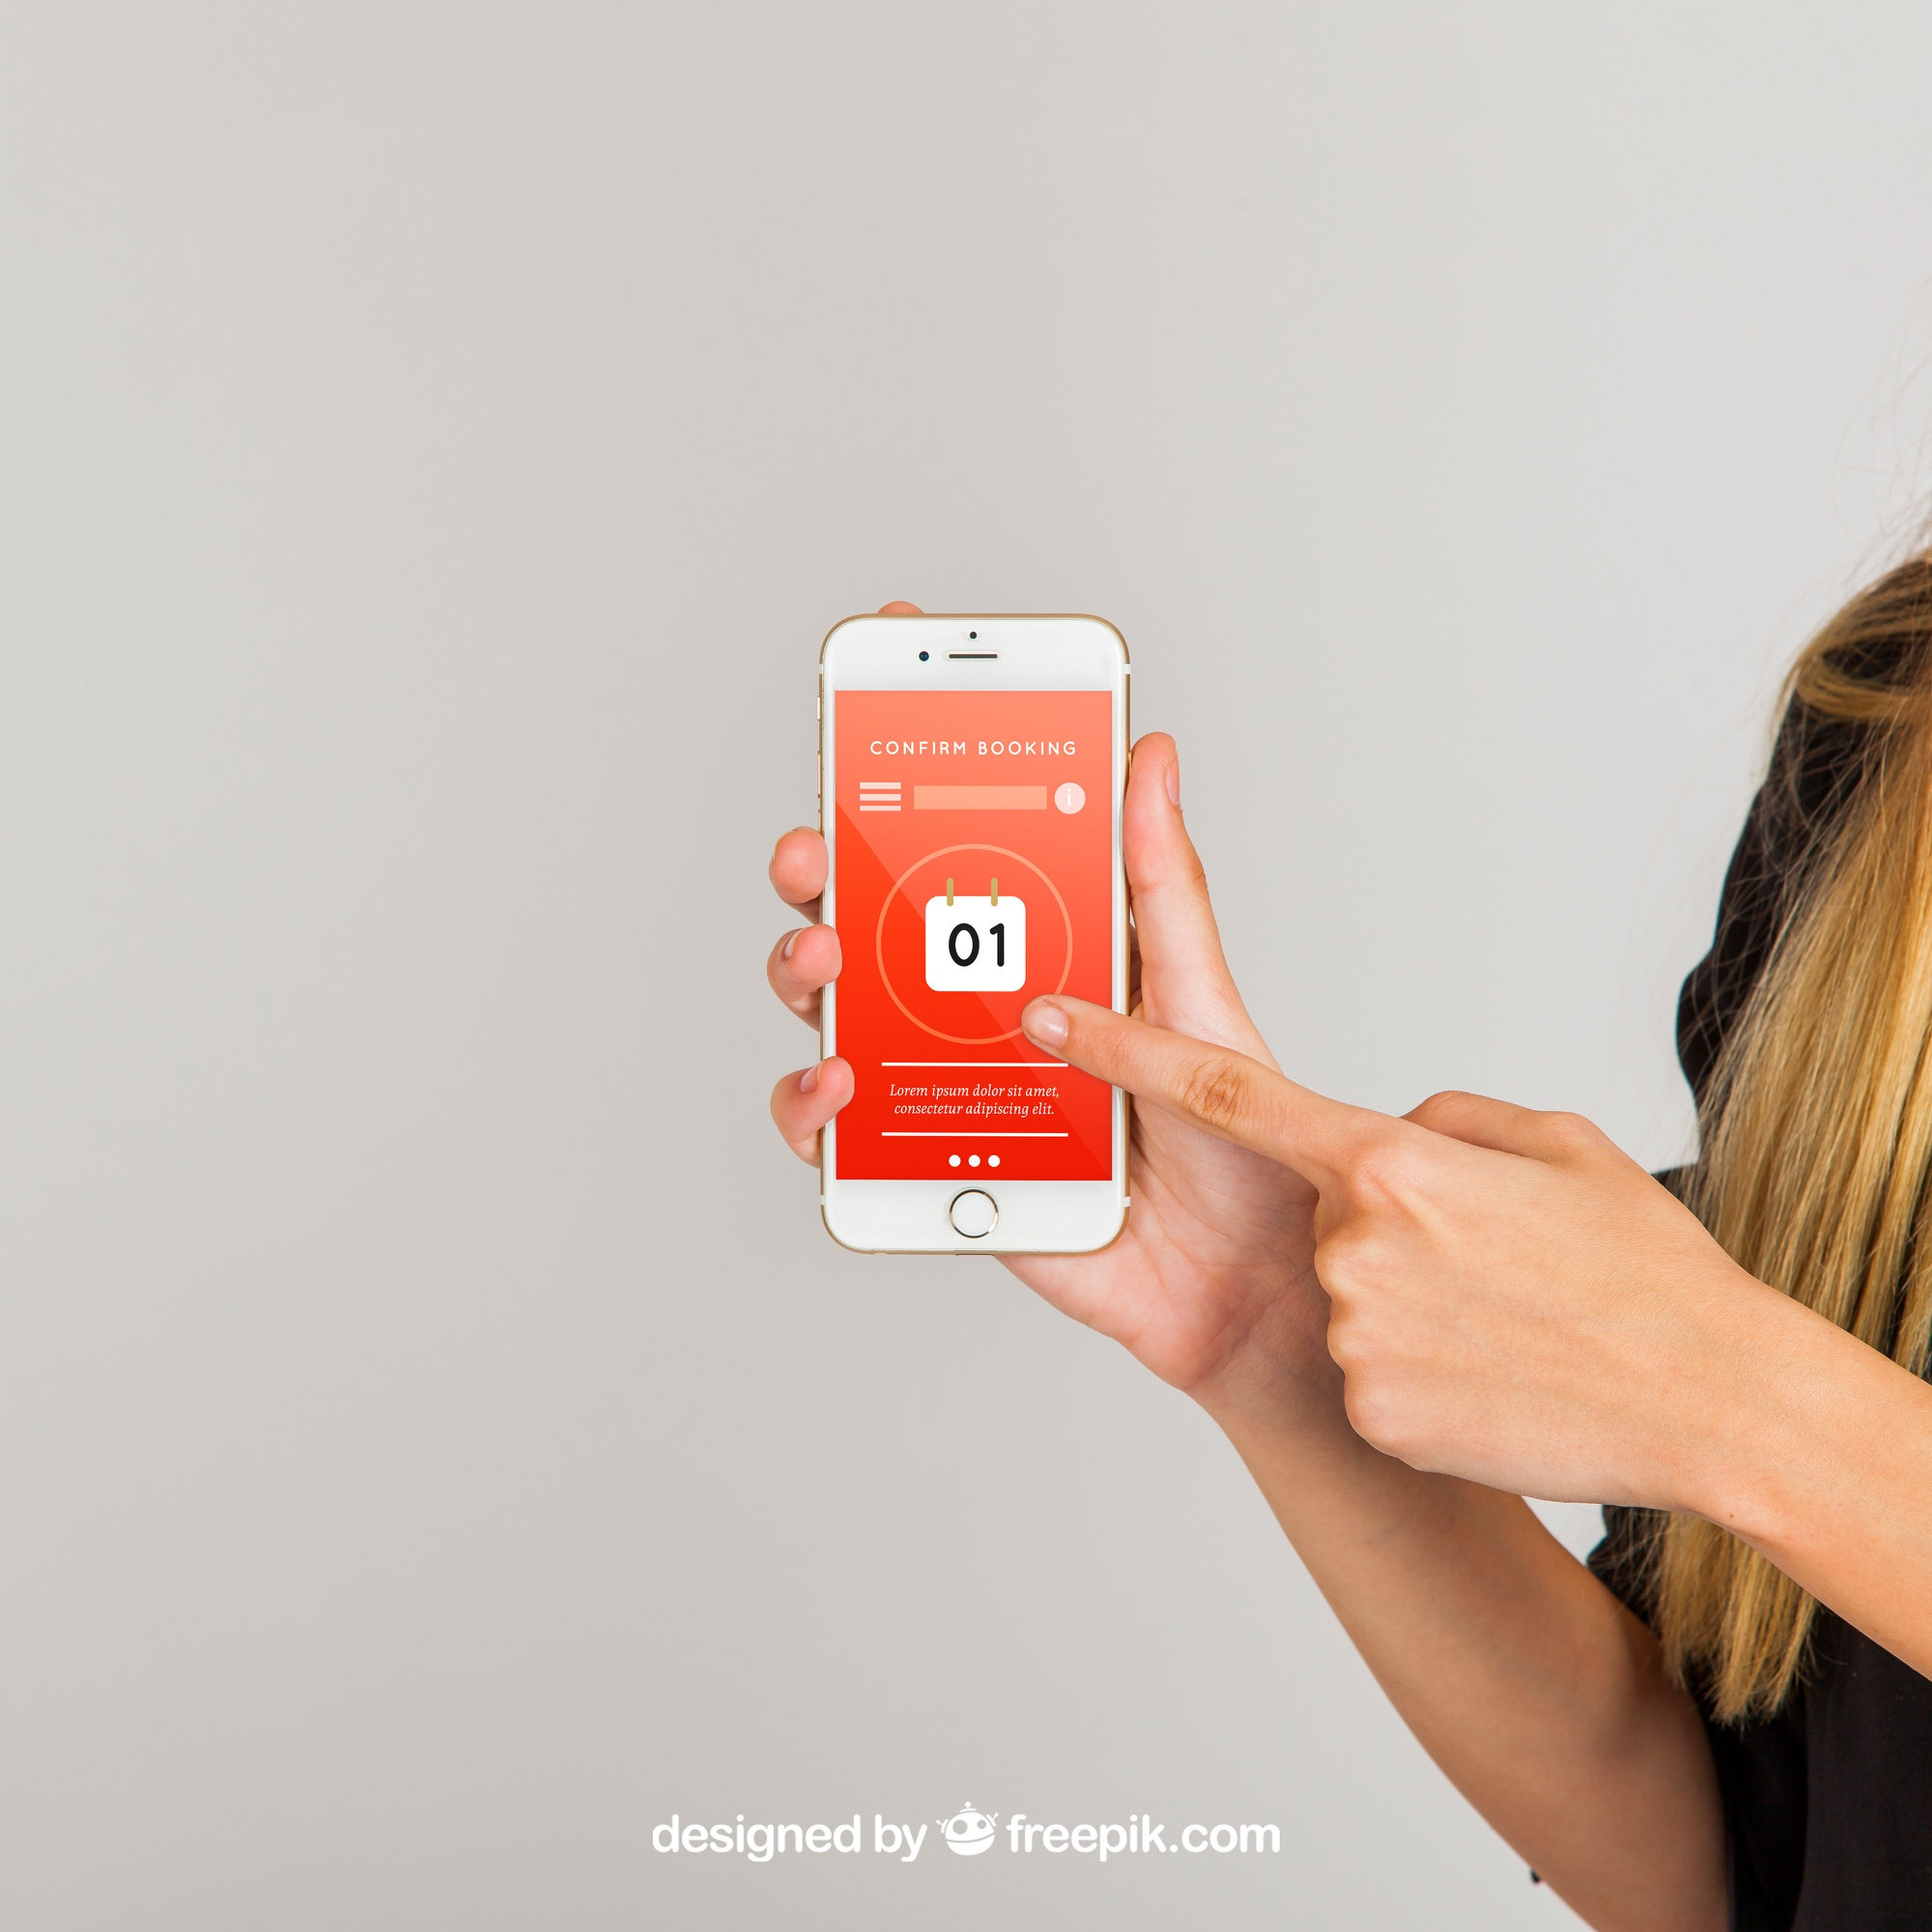 Mockup concept of finger pointing at smartphone